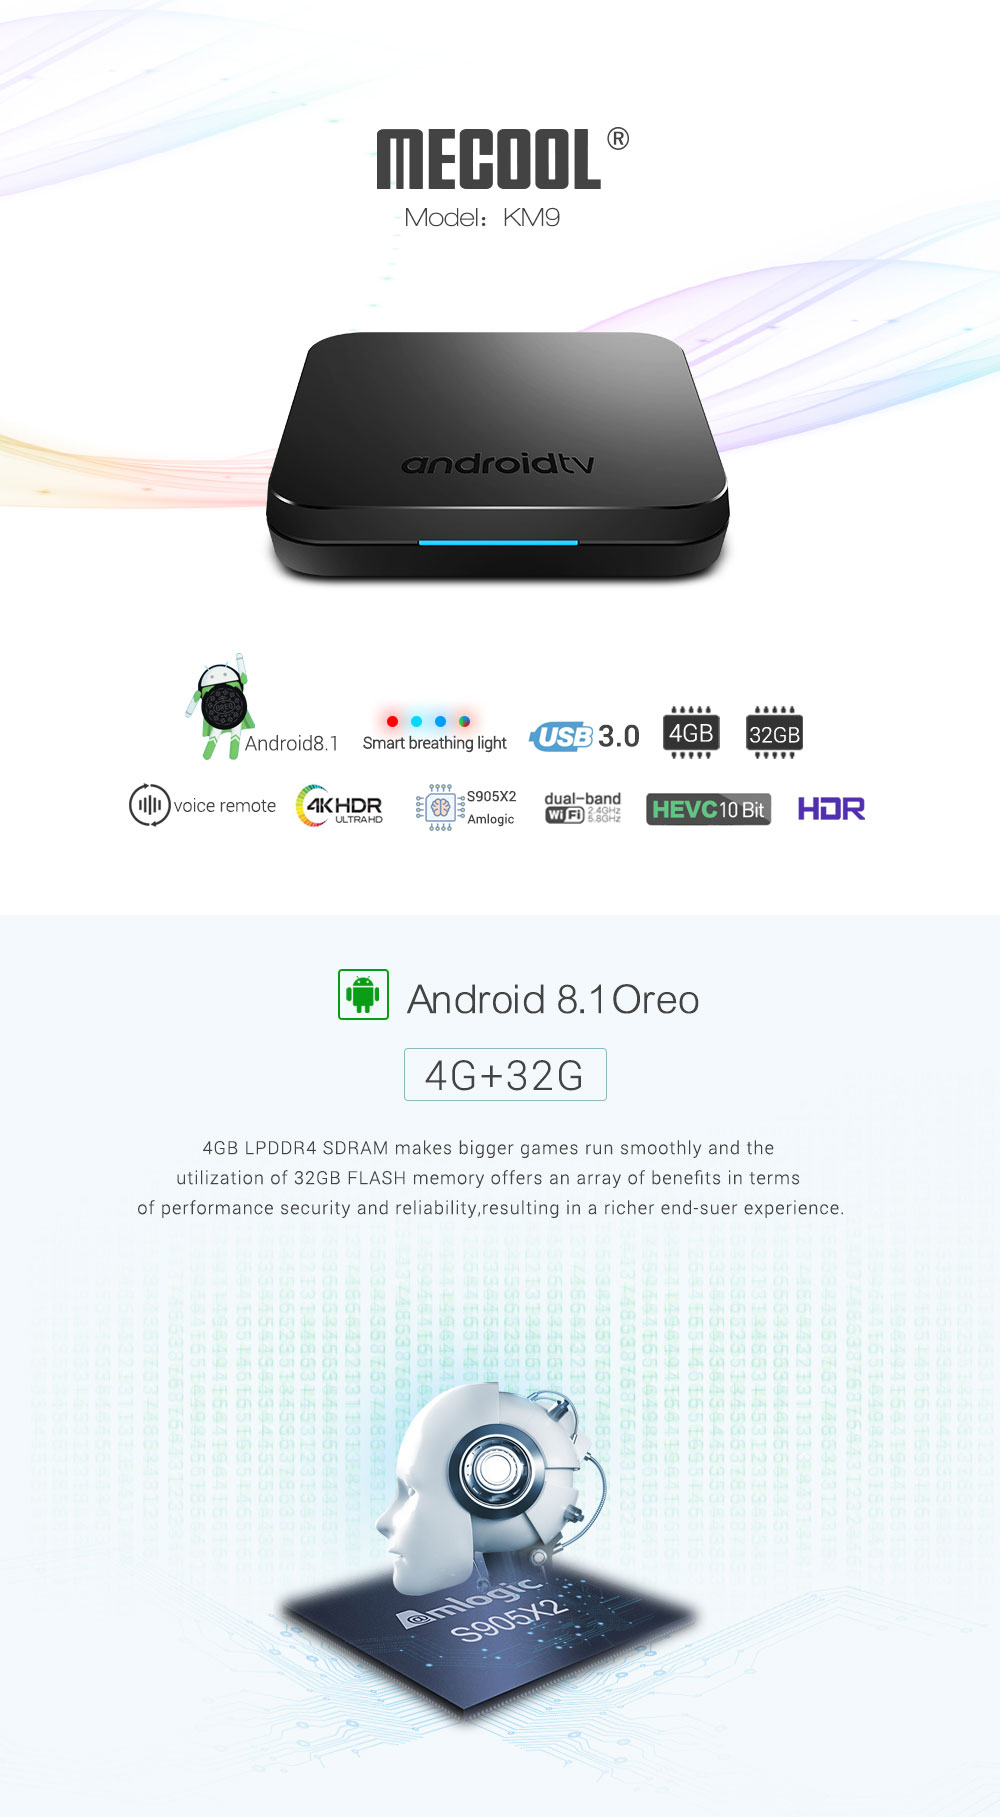 Mecool KM9 S905X2 4GB DDR4 RAM 32GB ROM Android 8.1 5G WIFI bluetooth 4.1 4K Voice Control TV Box